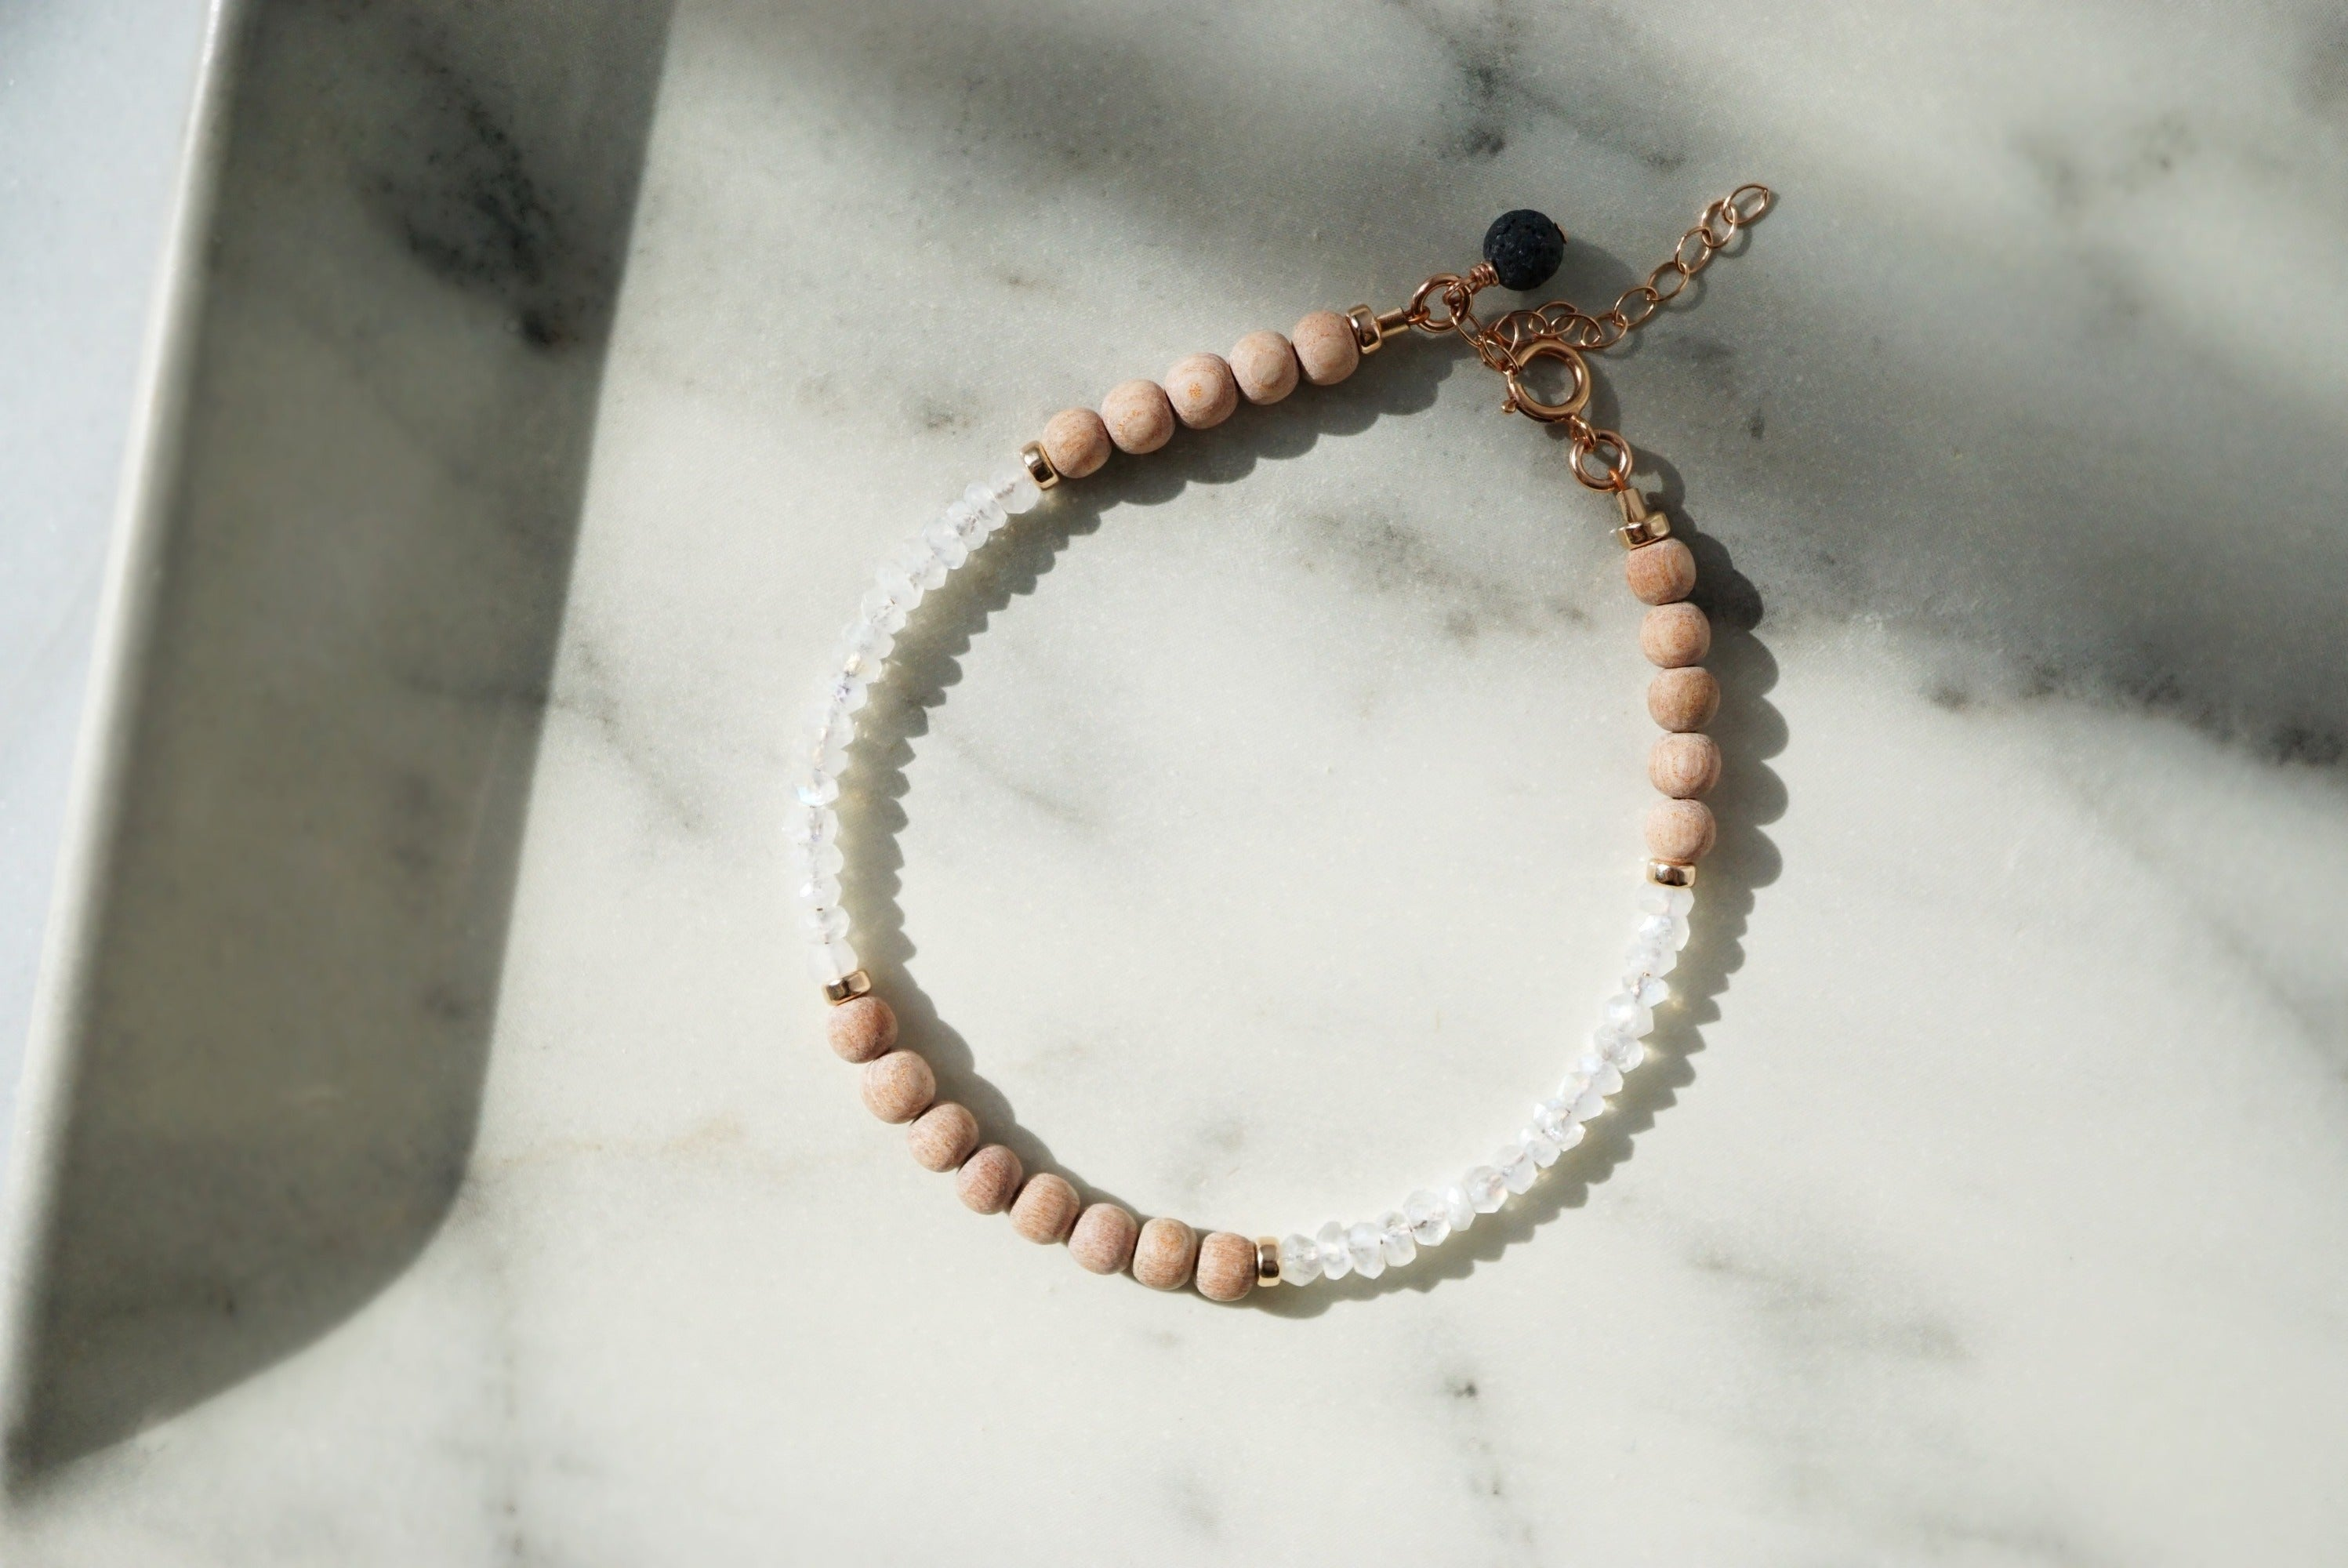 One-of-a-kind Dainty Rose Gold Rosewood and Rainbow Moonstone Aromatherapy Bracelet